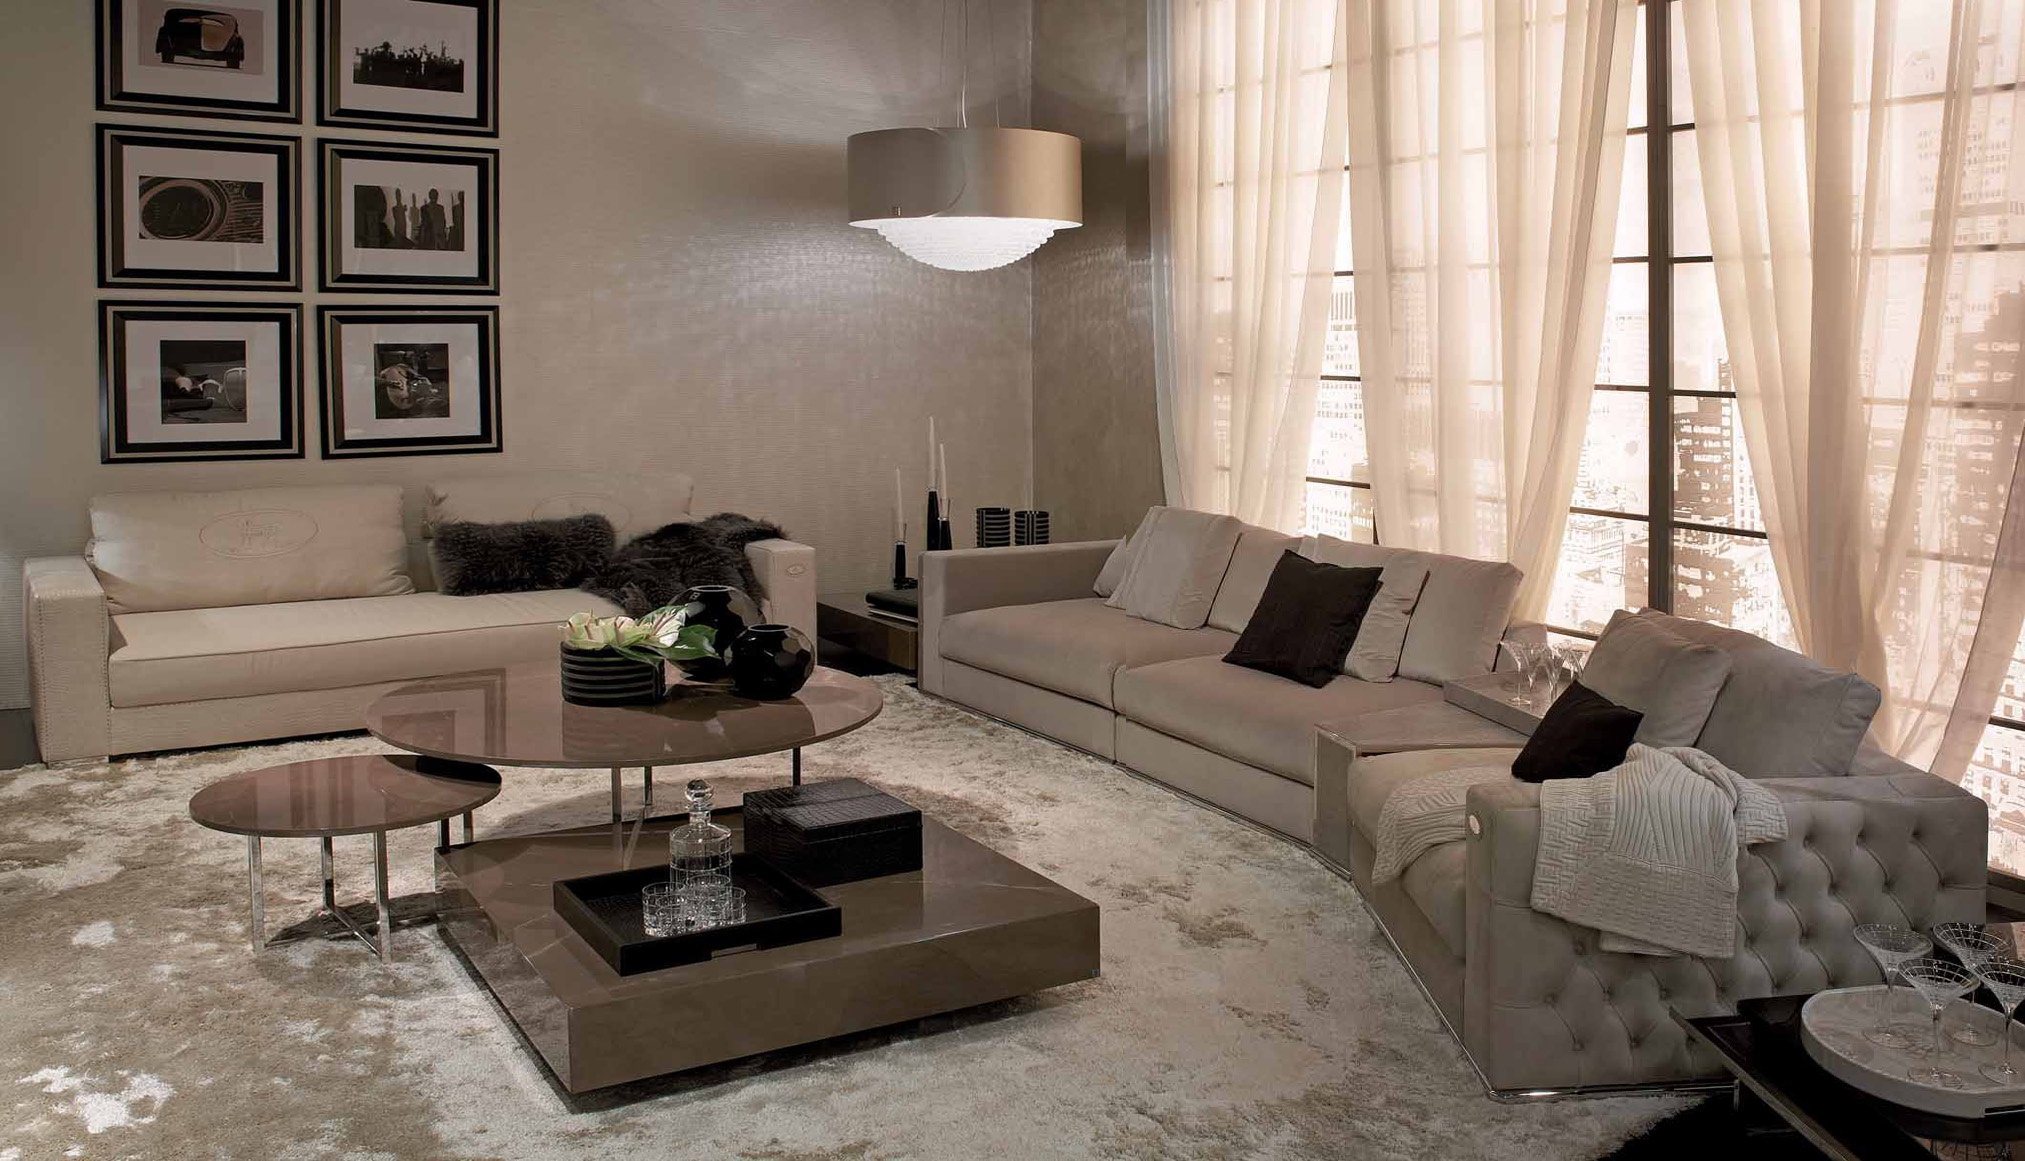 Modular Sofa In Leather Upholstery Plaza Fendi Luxury Furniture Mr